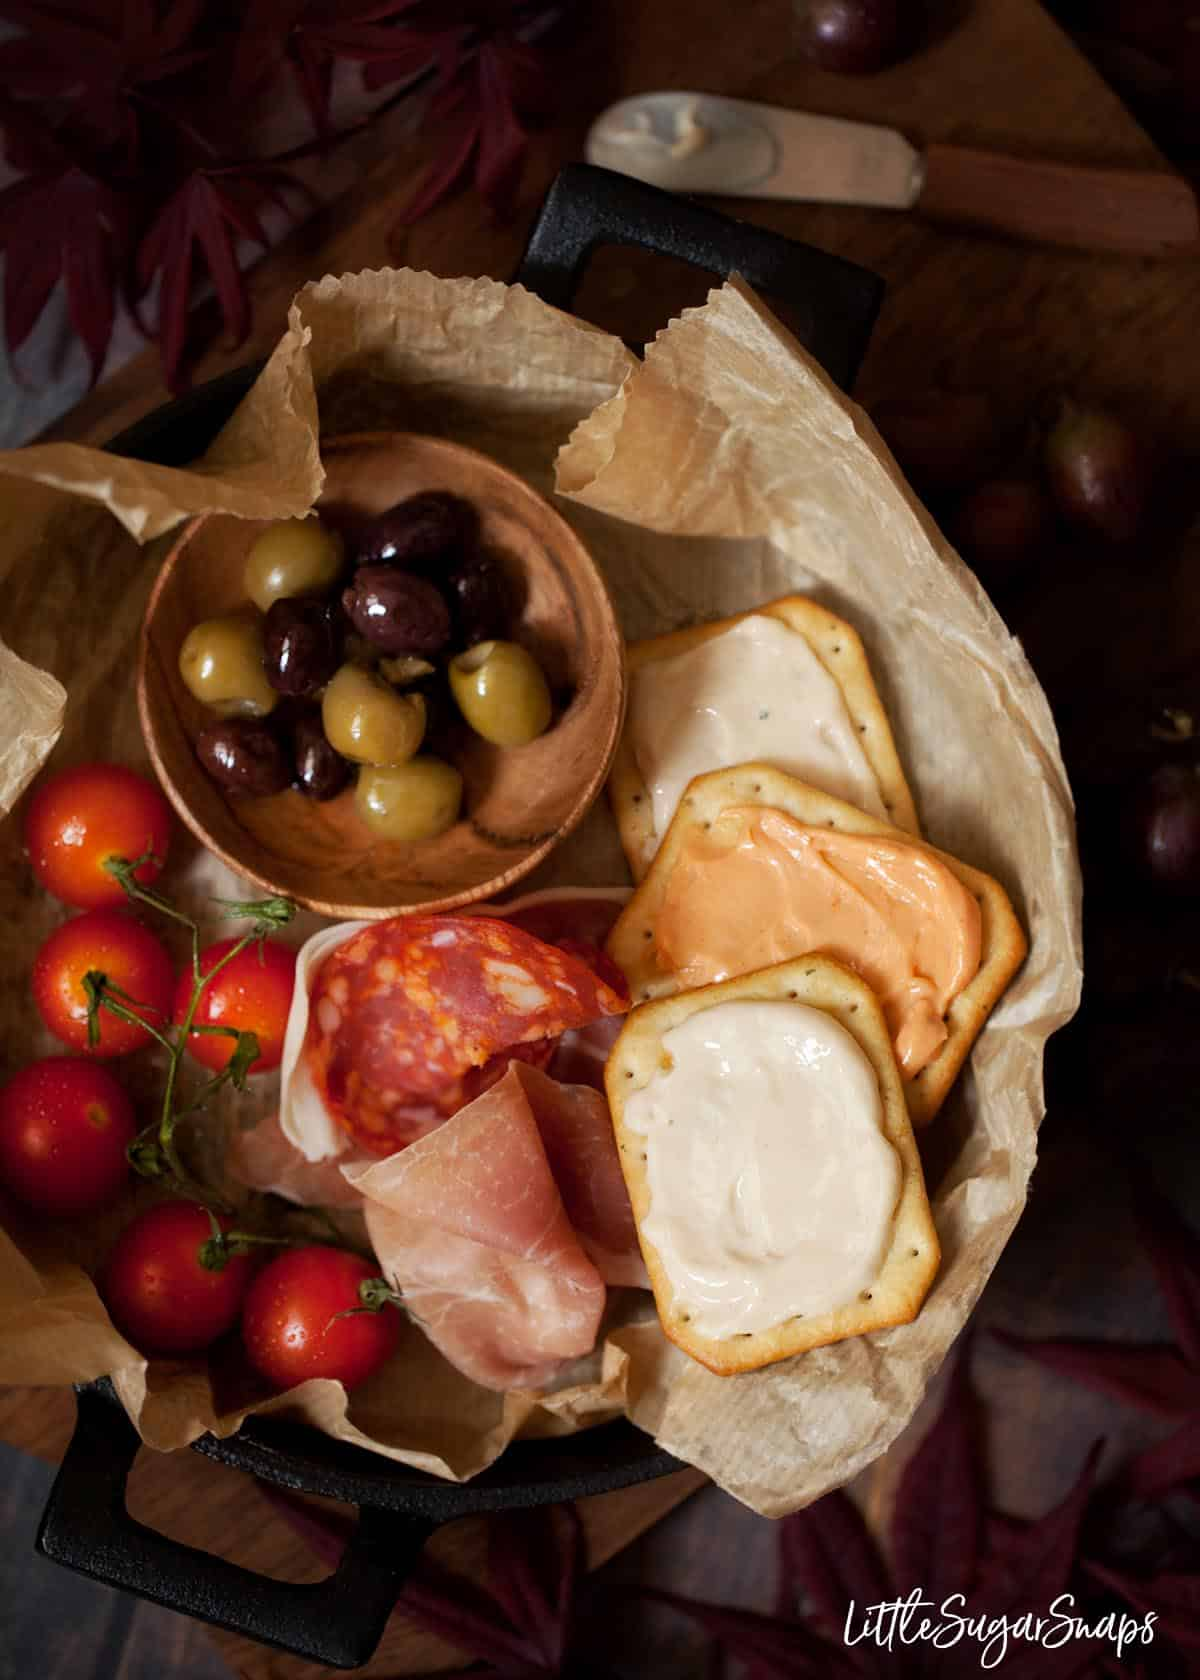 Crackers with cheese spread, olives, cured meats and cherry tomatoes on the vine.